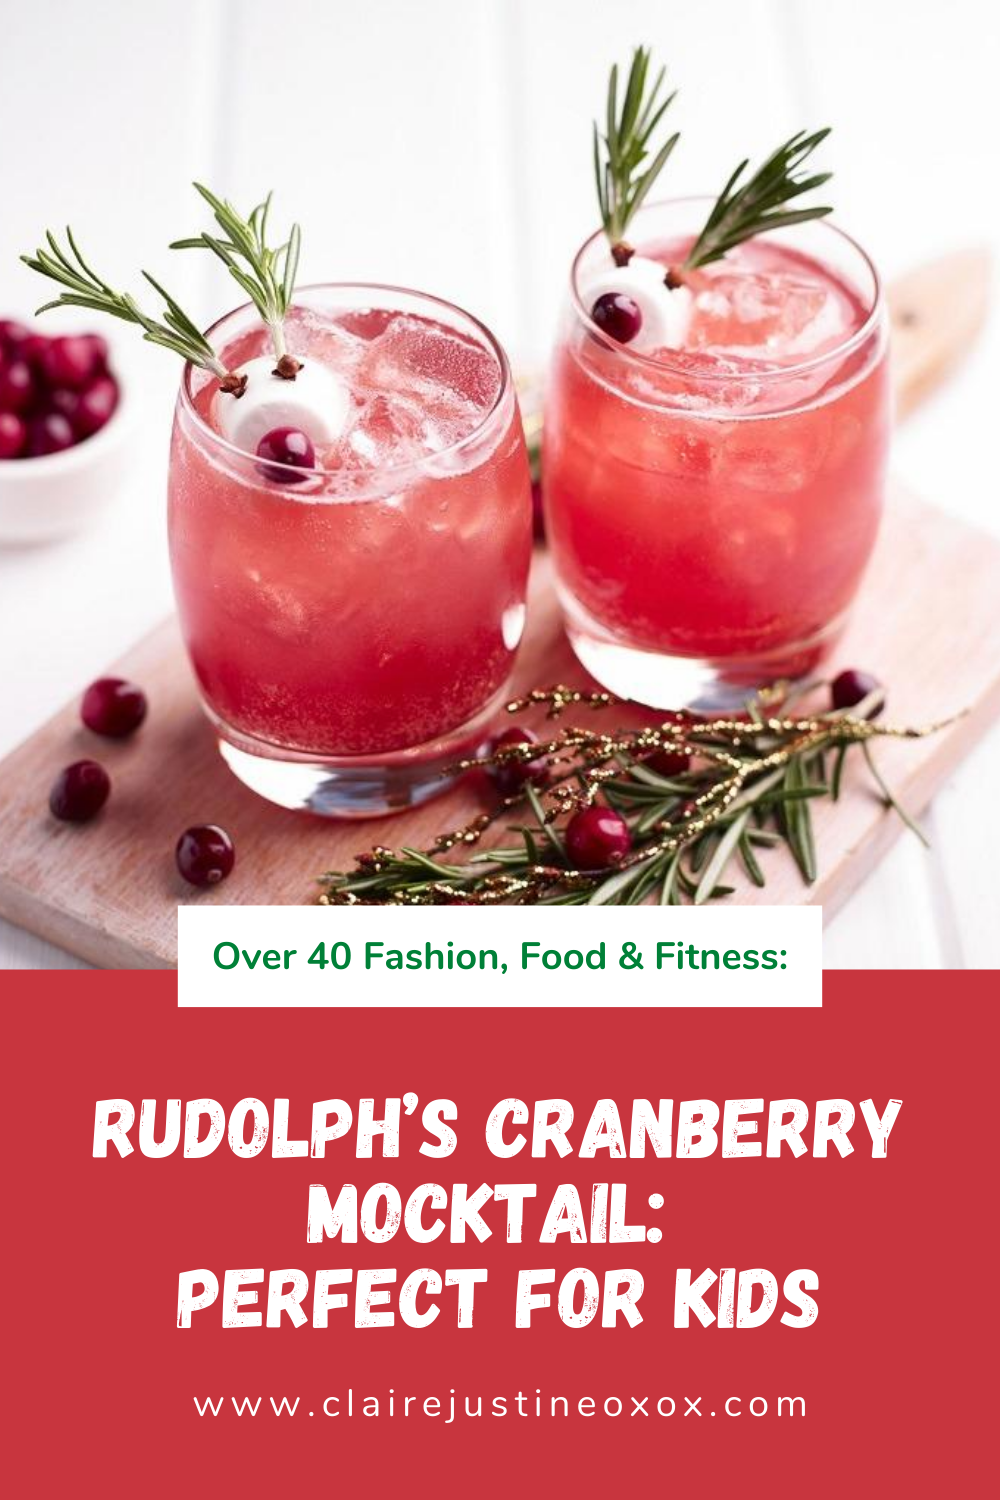 Rudolph's Cranberry Mocktail: How Amazing!?